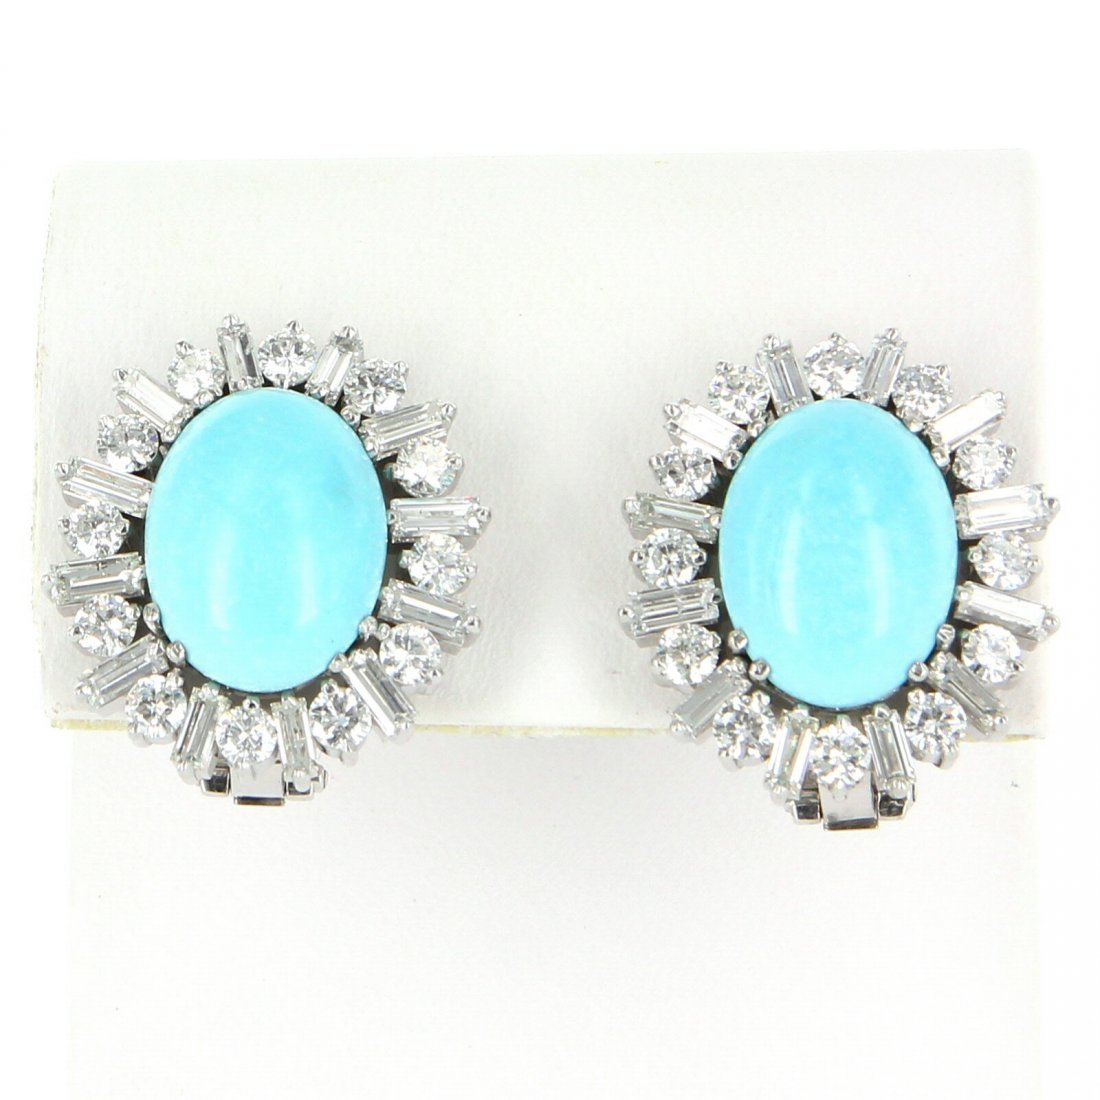 Turquoise 3.90ct Diamond Cocktail Earrings 18k White